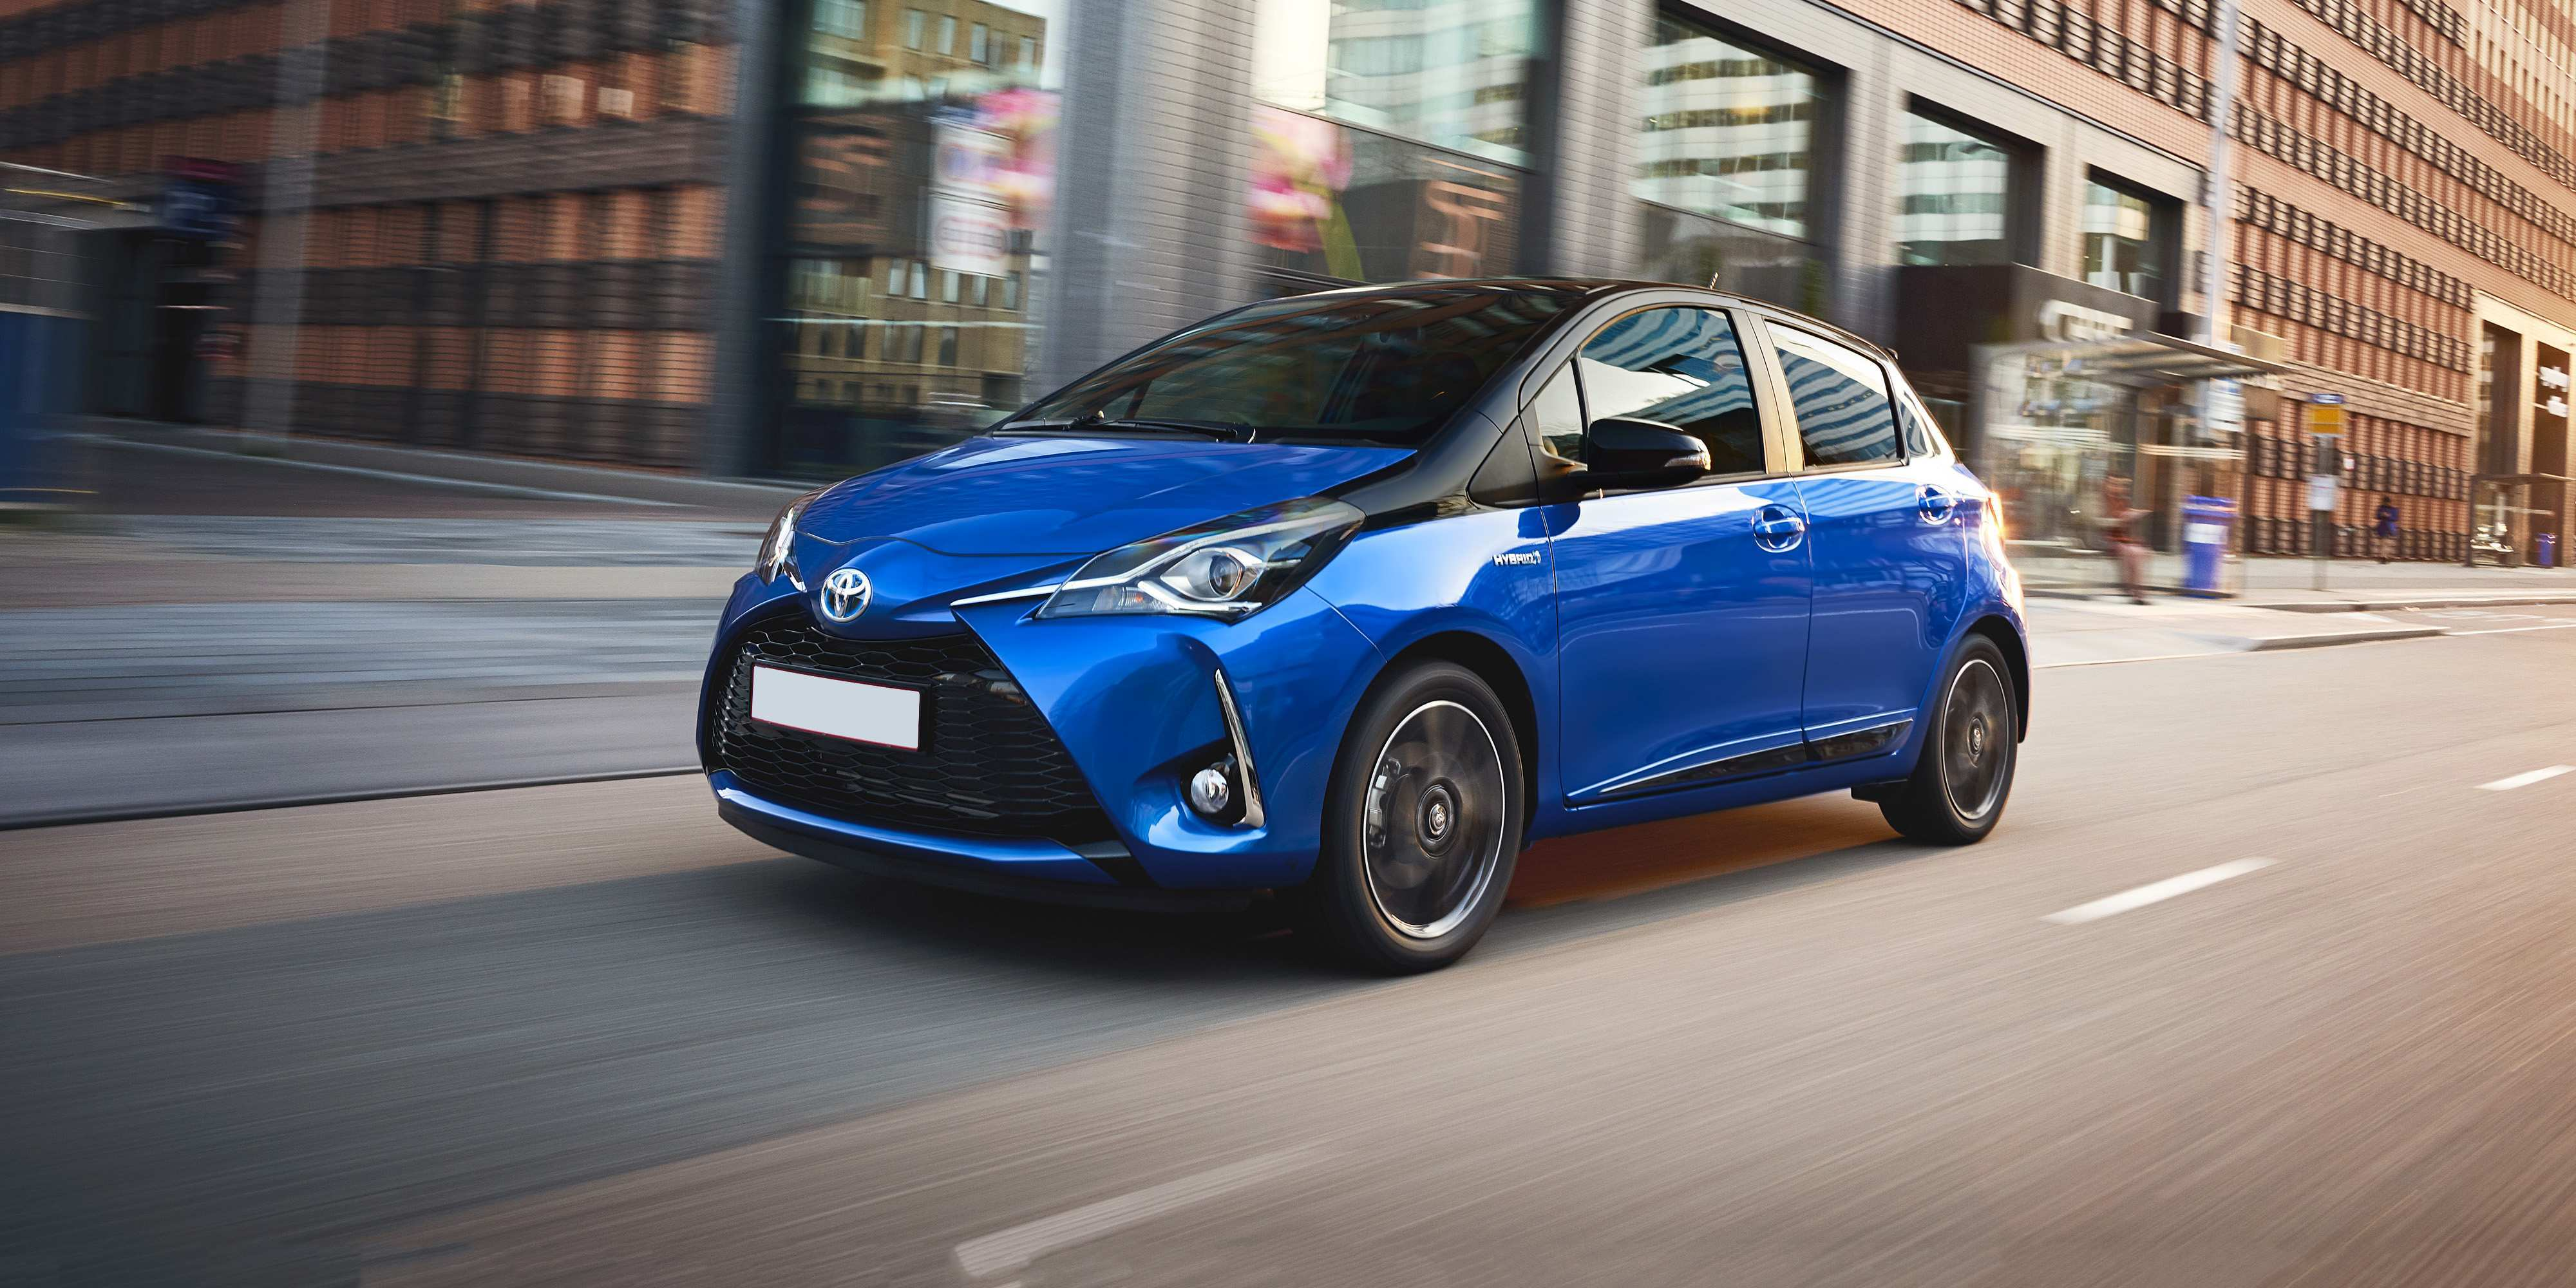 60 Best Toyota Yaris 2020 Australia Price And Release Date